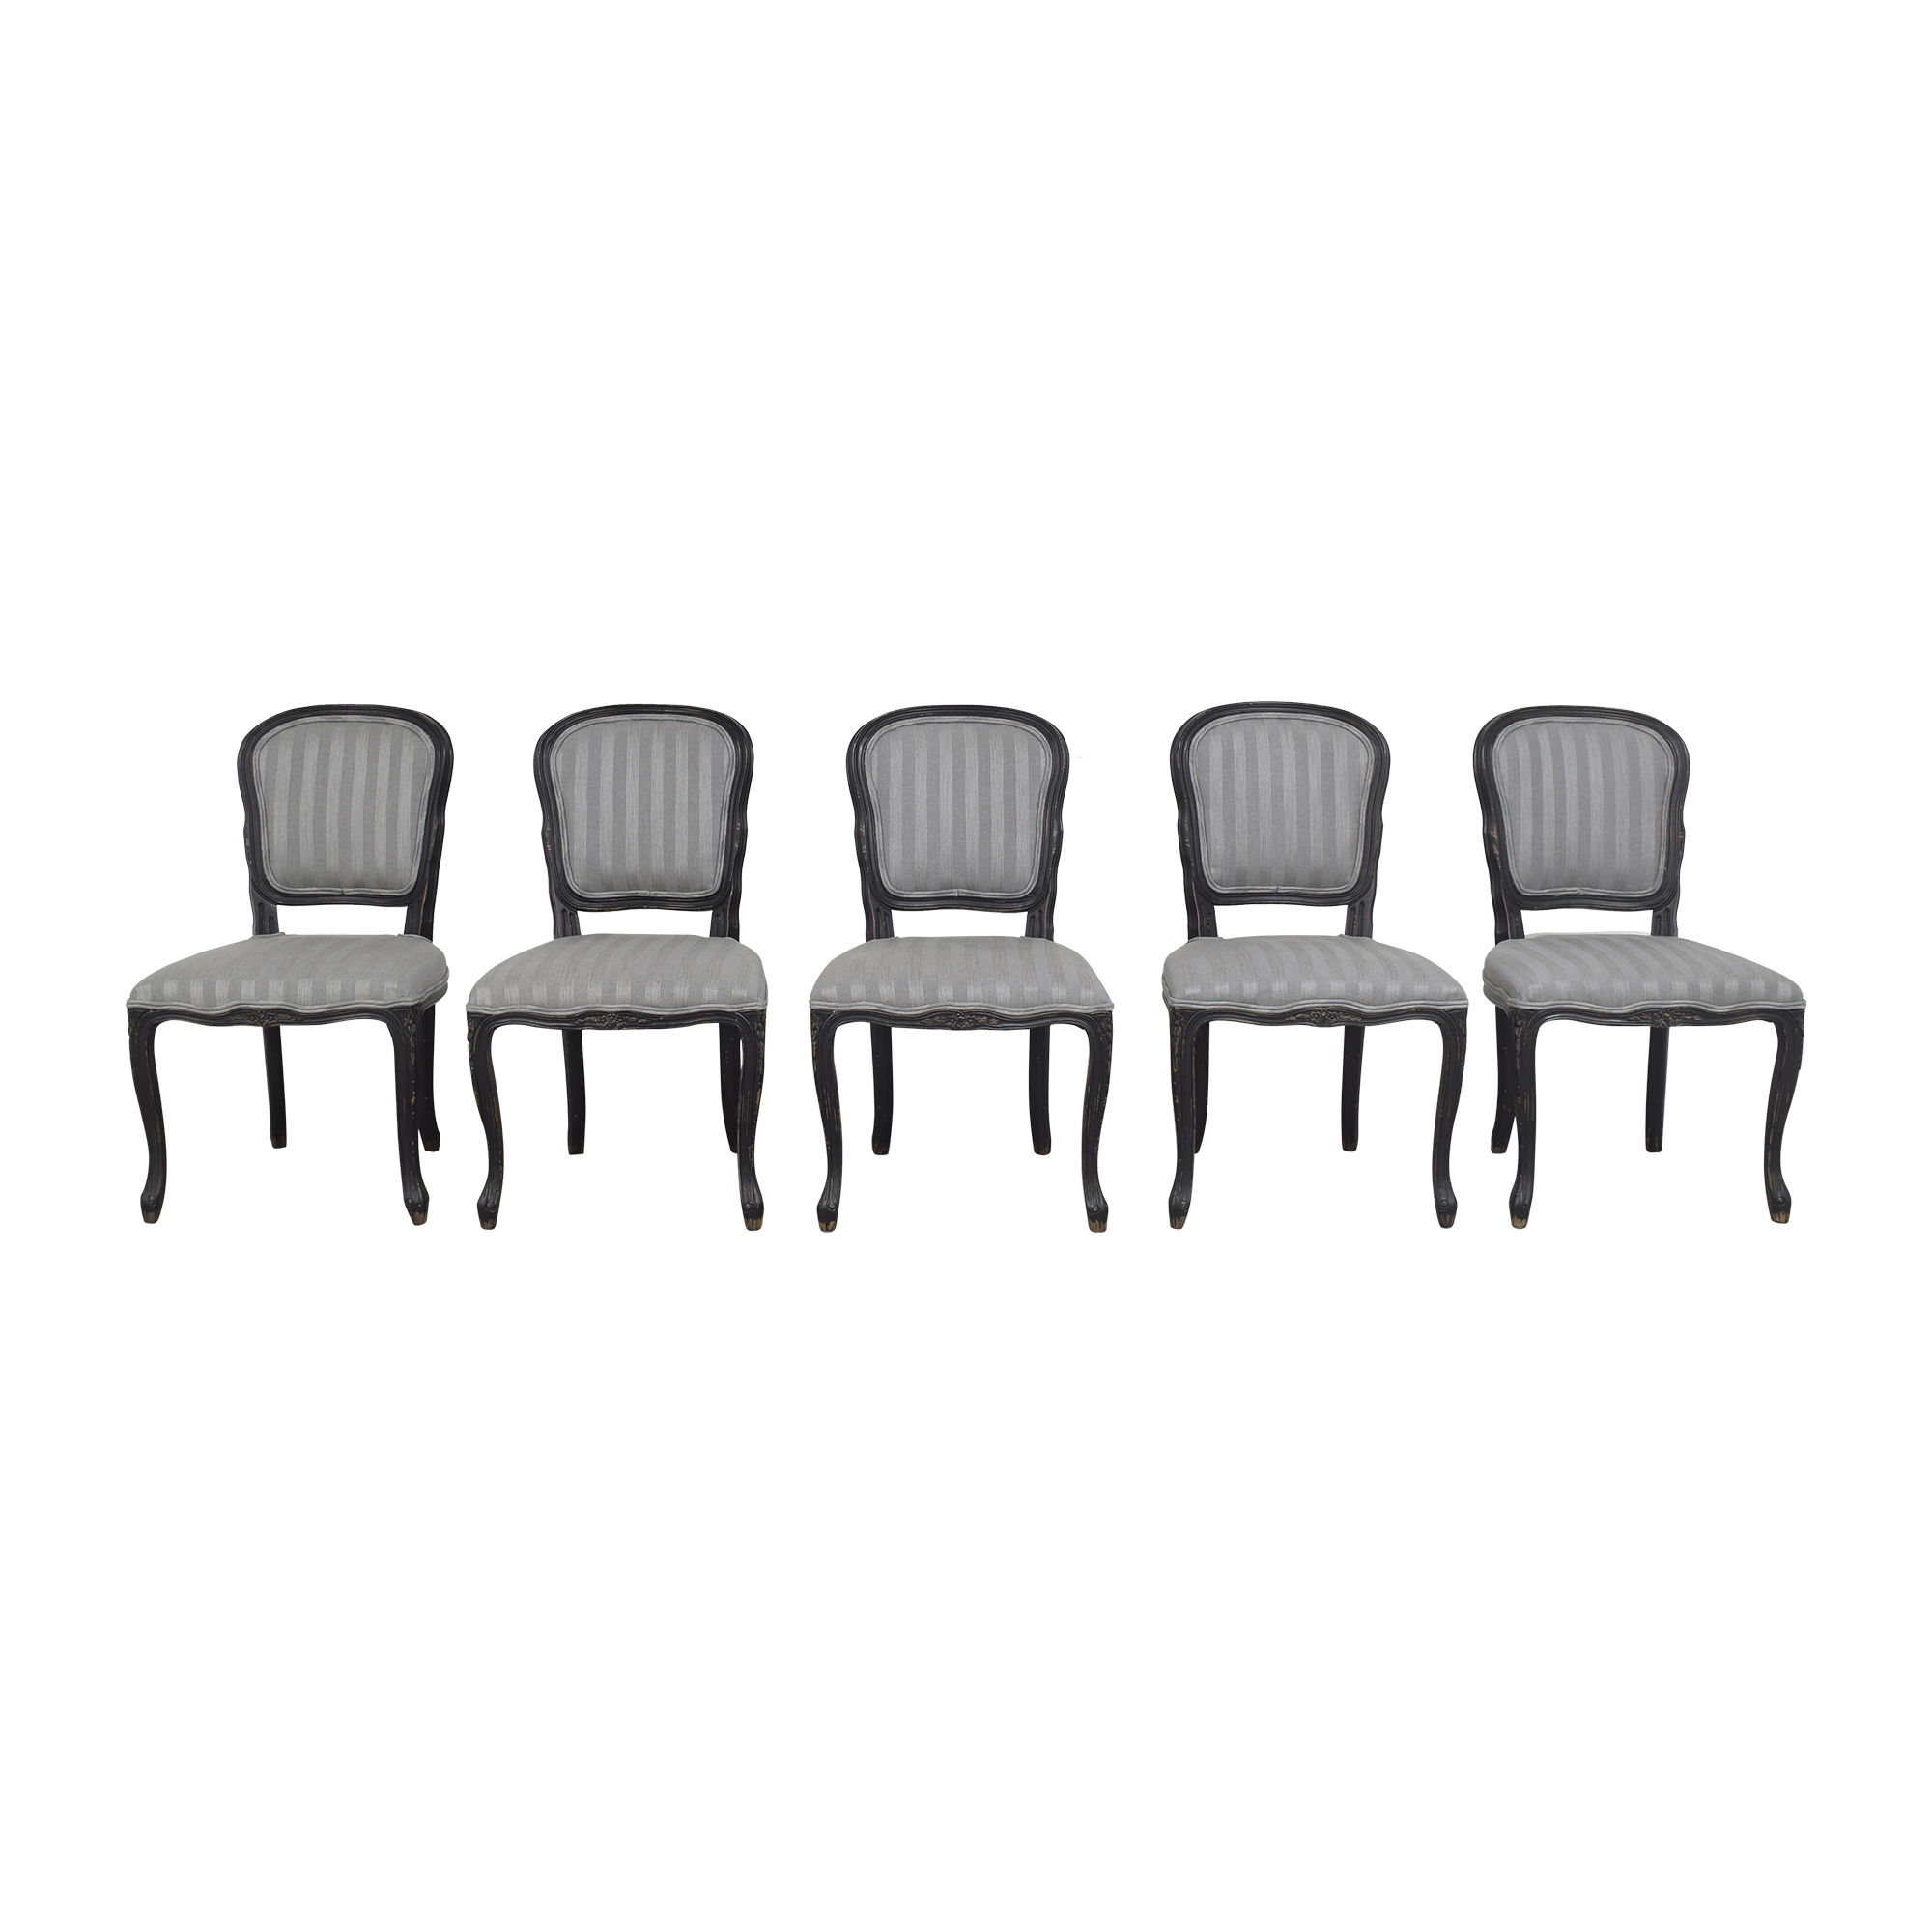 Four Hands Orleans Dining Chairs / Dining Chairs